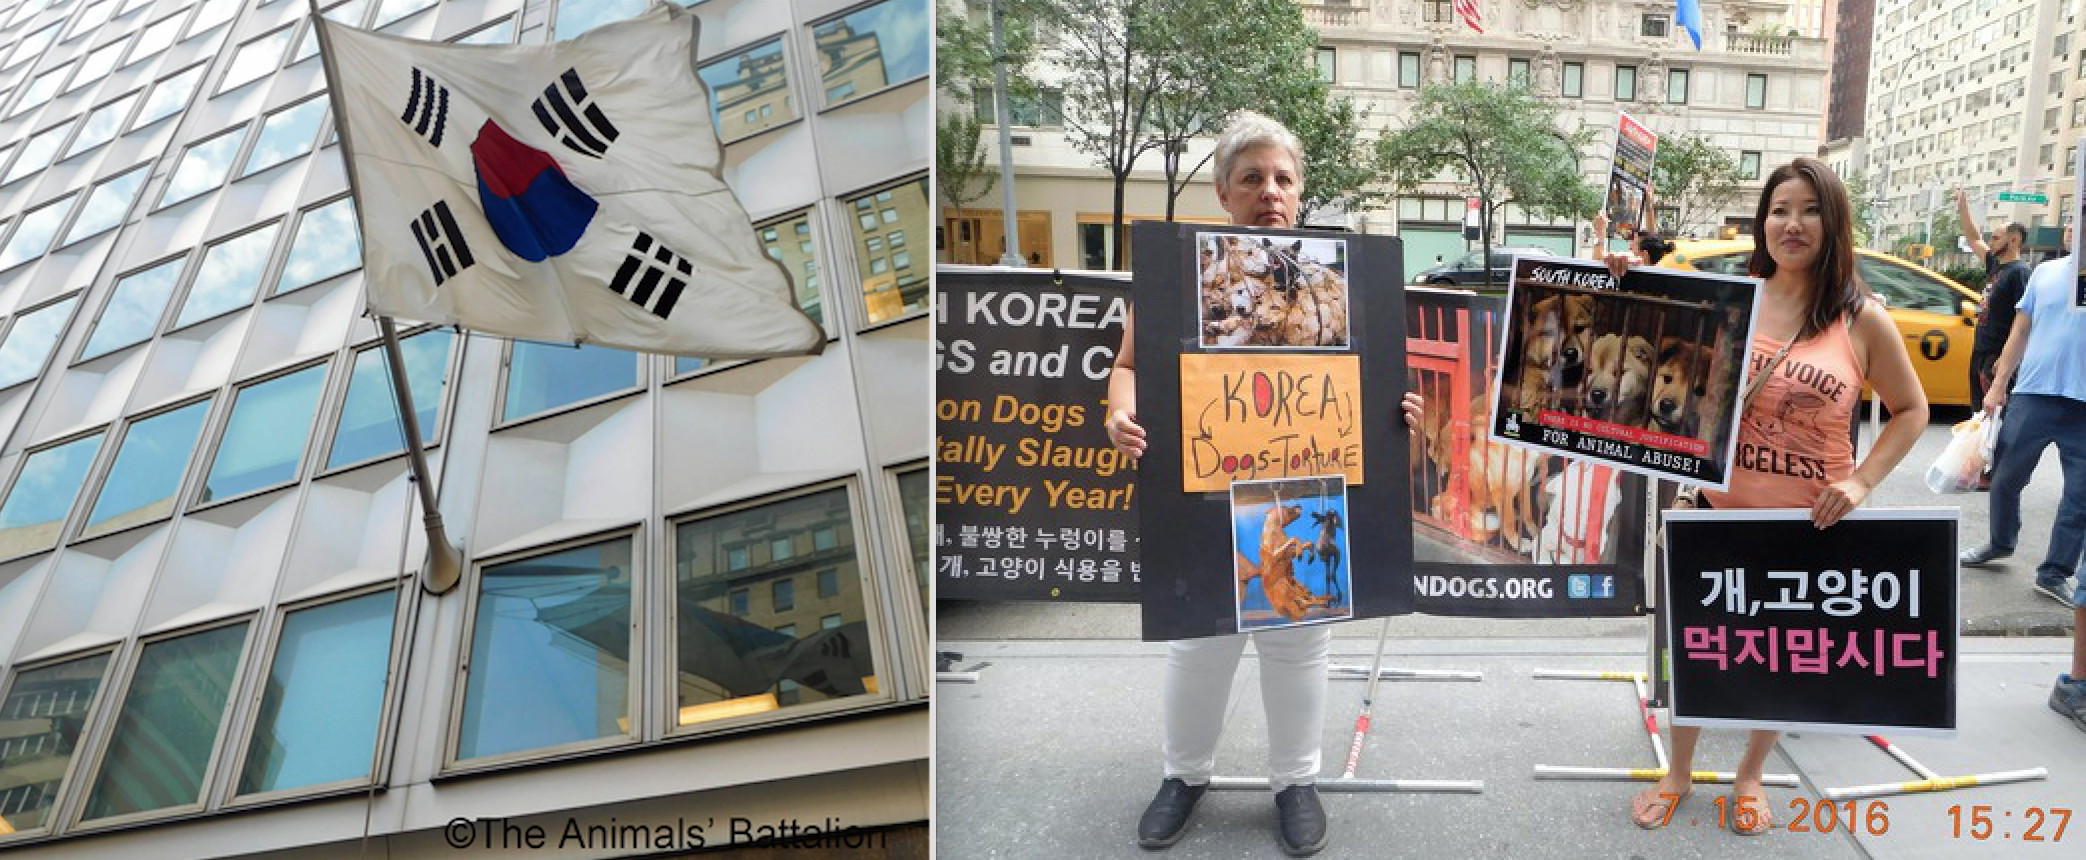 Animal rights activists protesting at the Korean embassy.